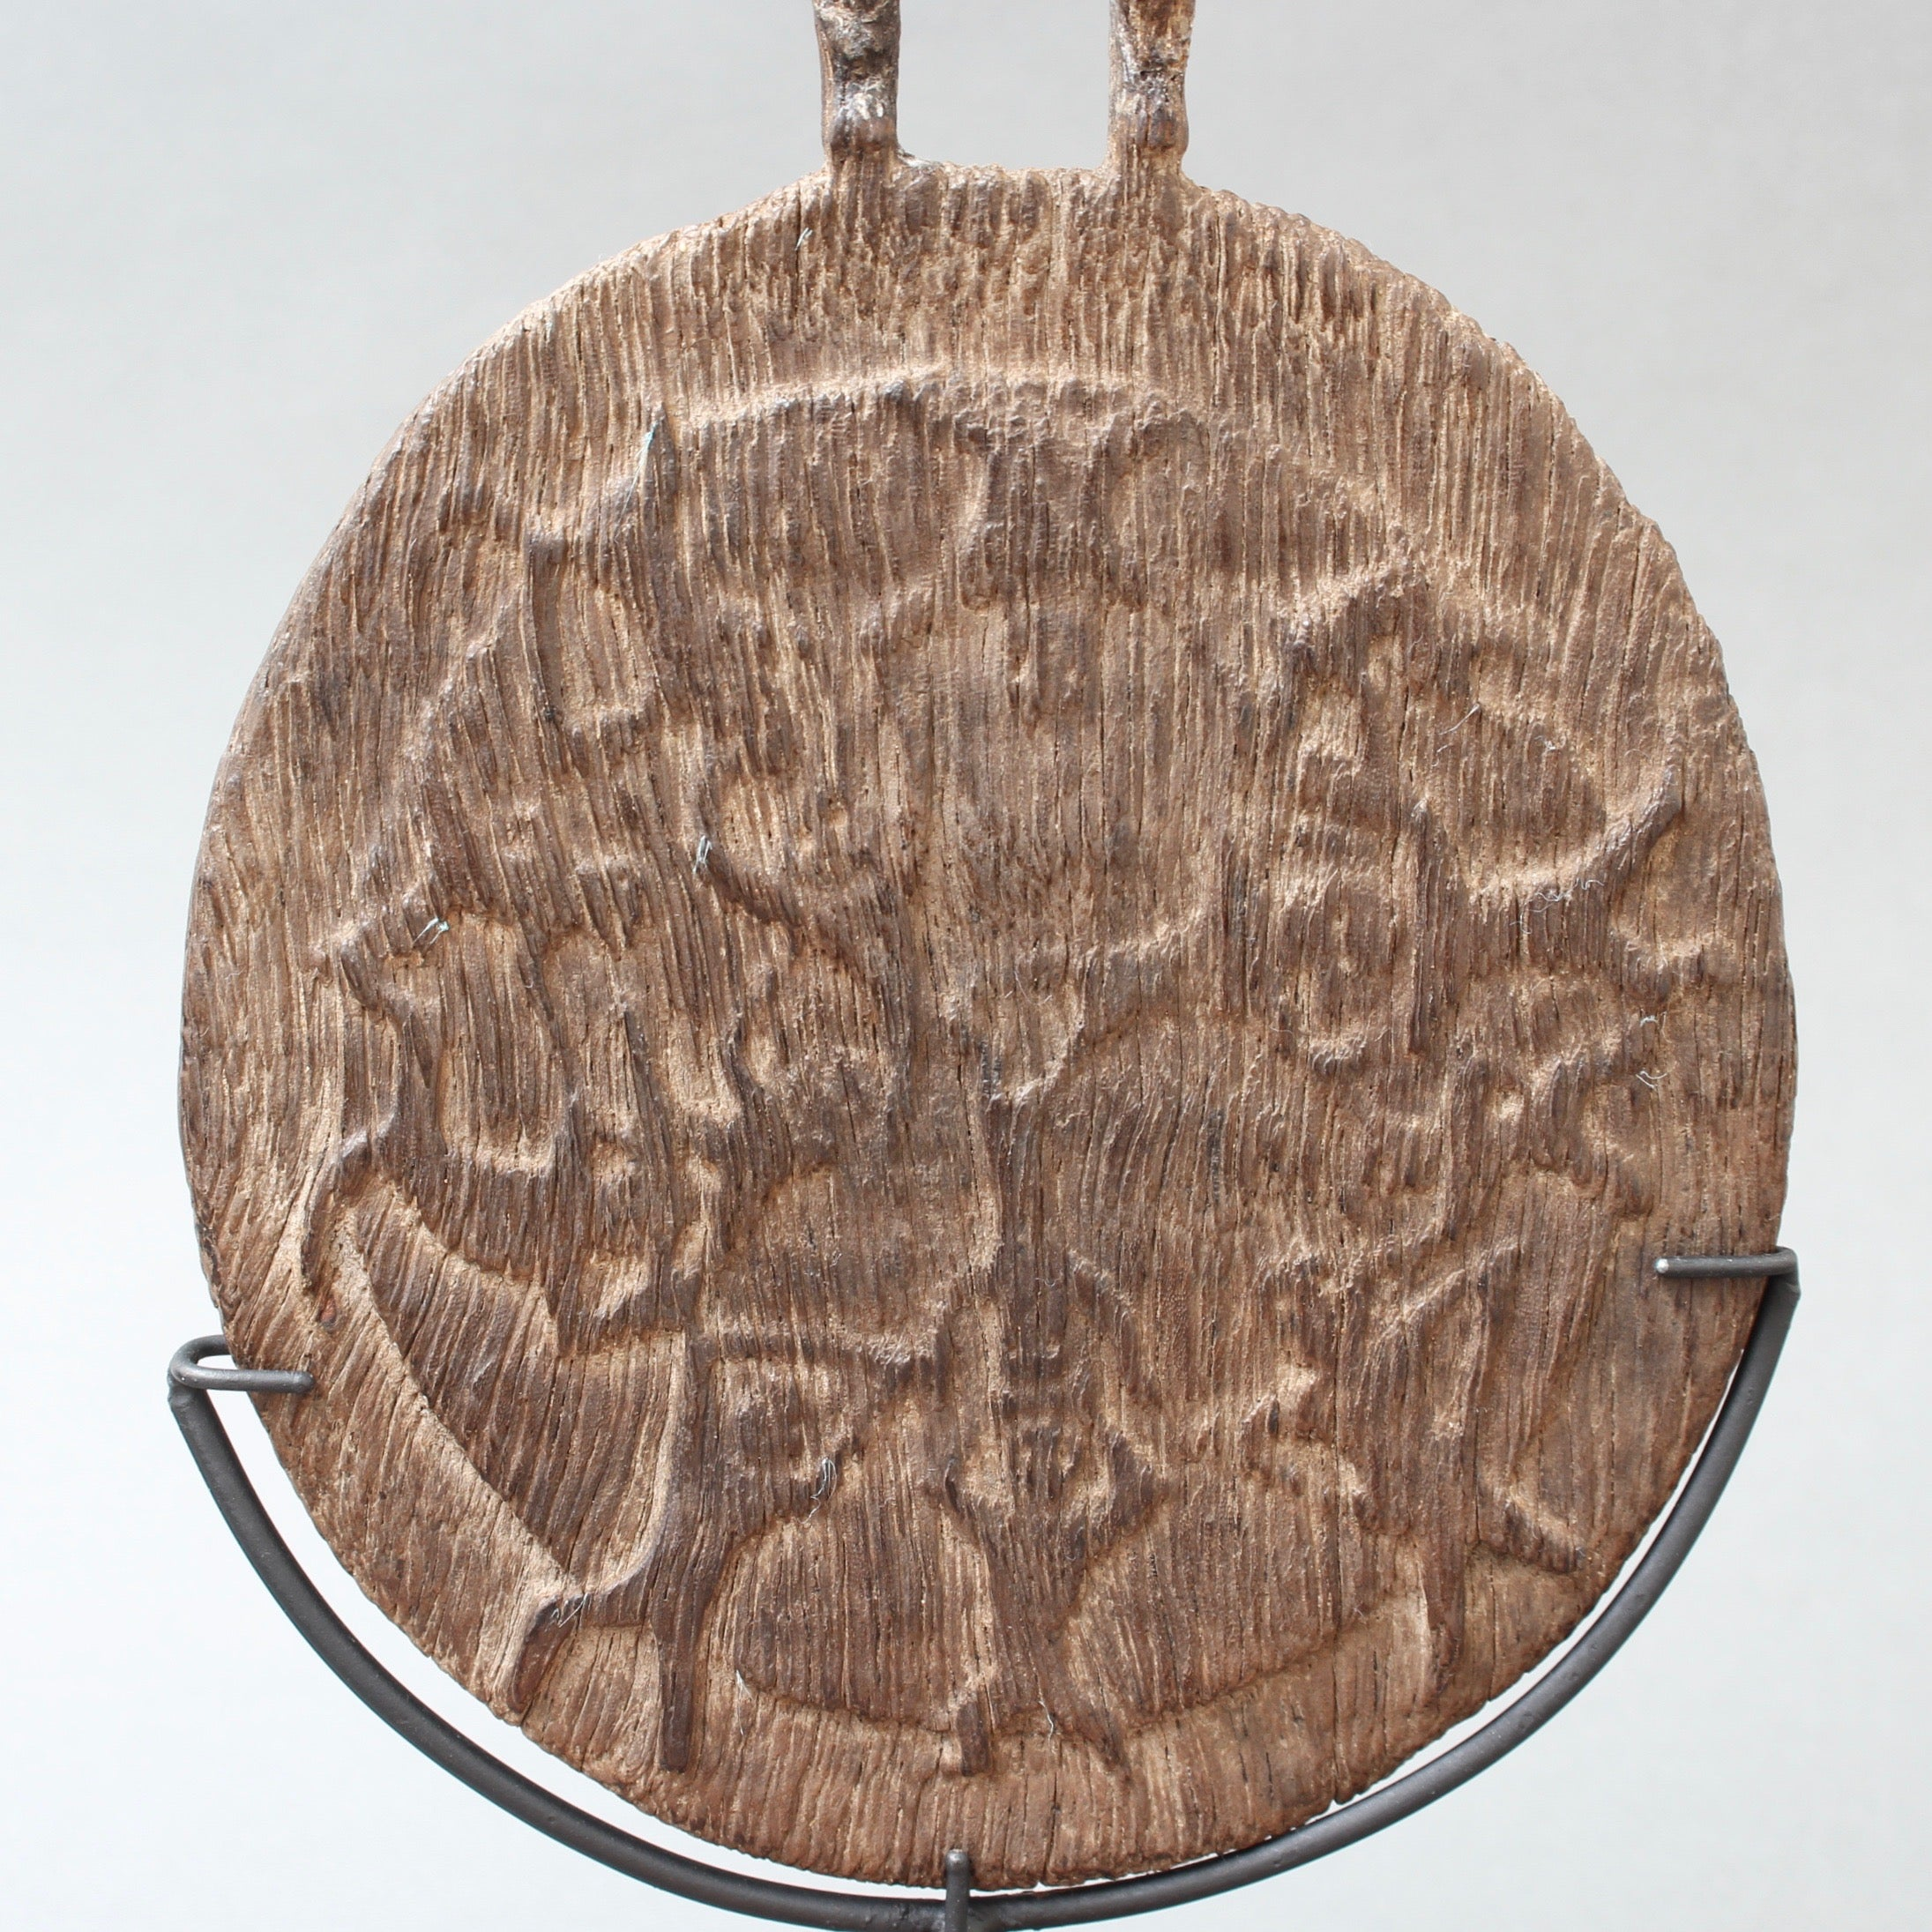 Early-20th Century Carved Wooden Ritual Calendar from Kalimantan (Borneo)